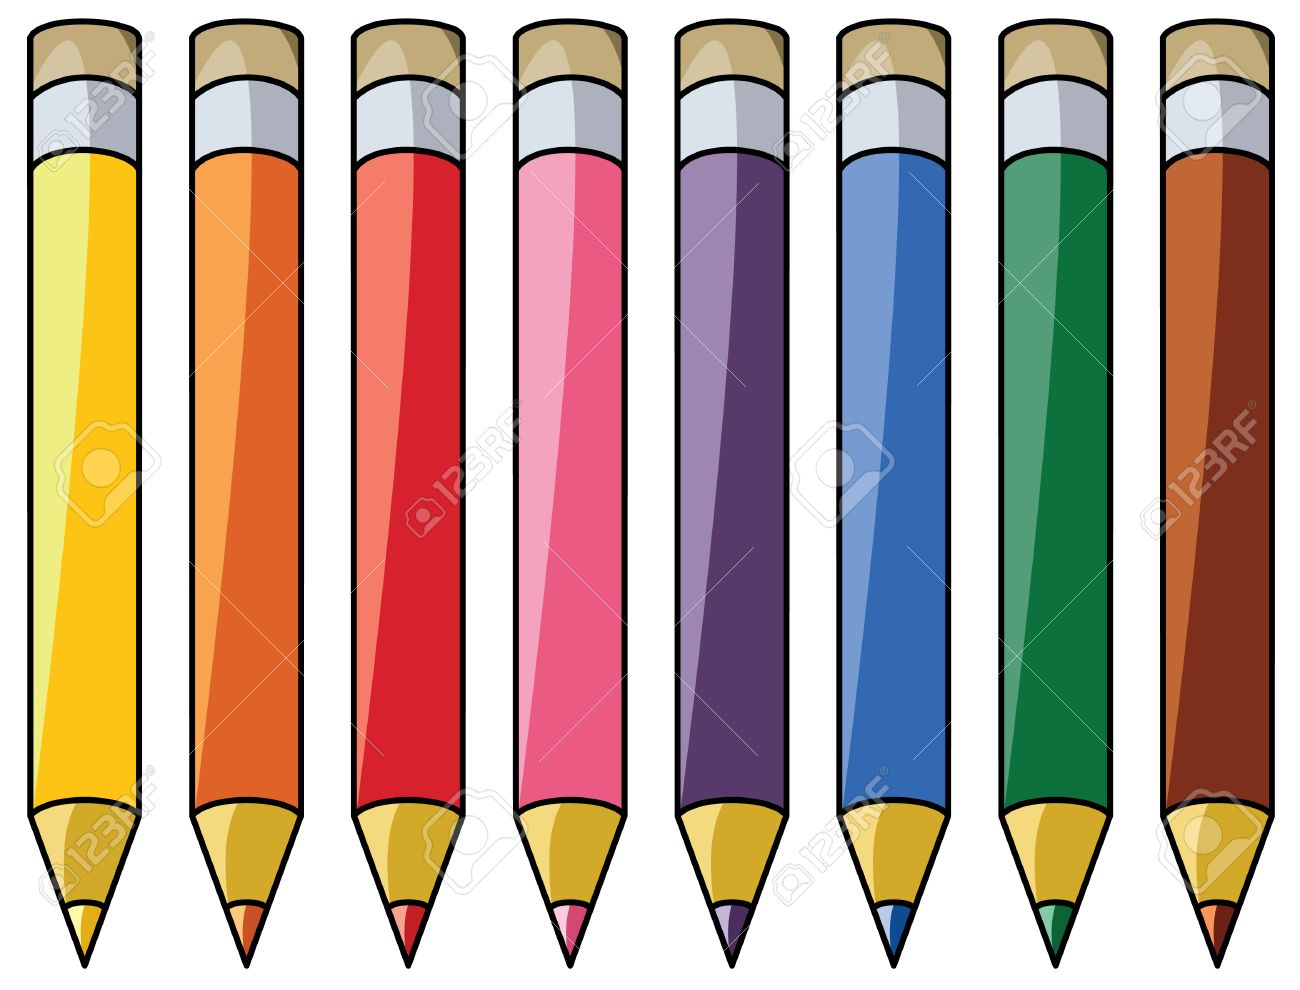 hight resolution of colourful pencils clipart stock vector 8355035